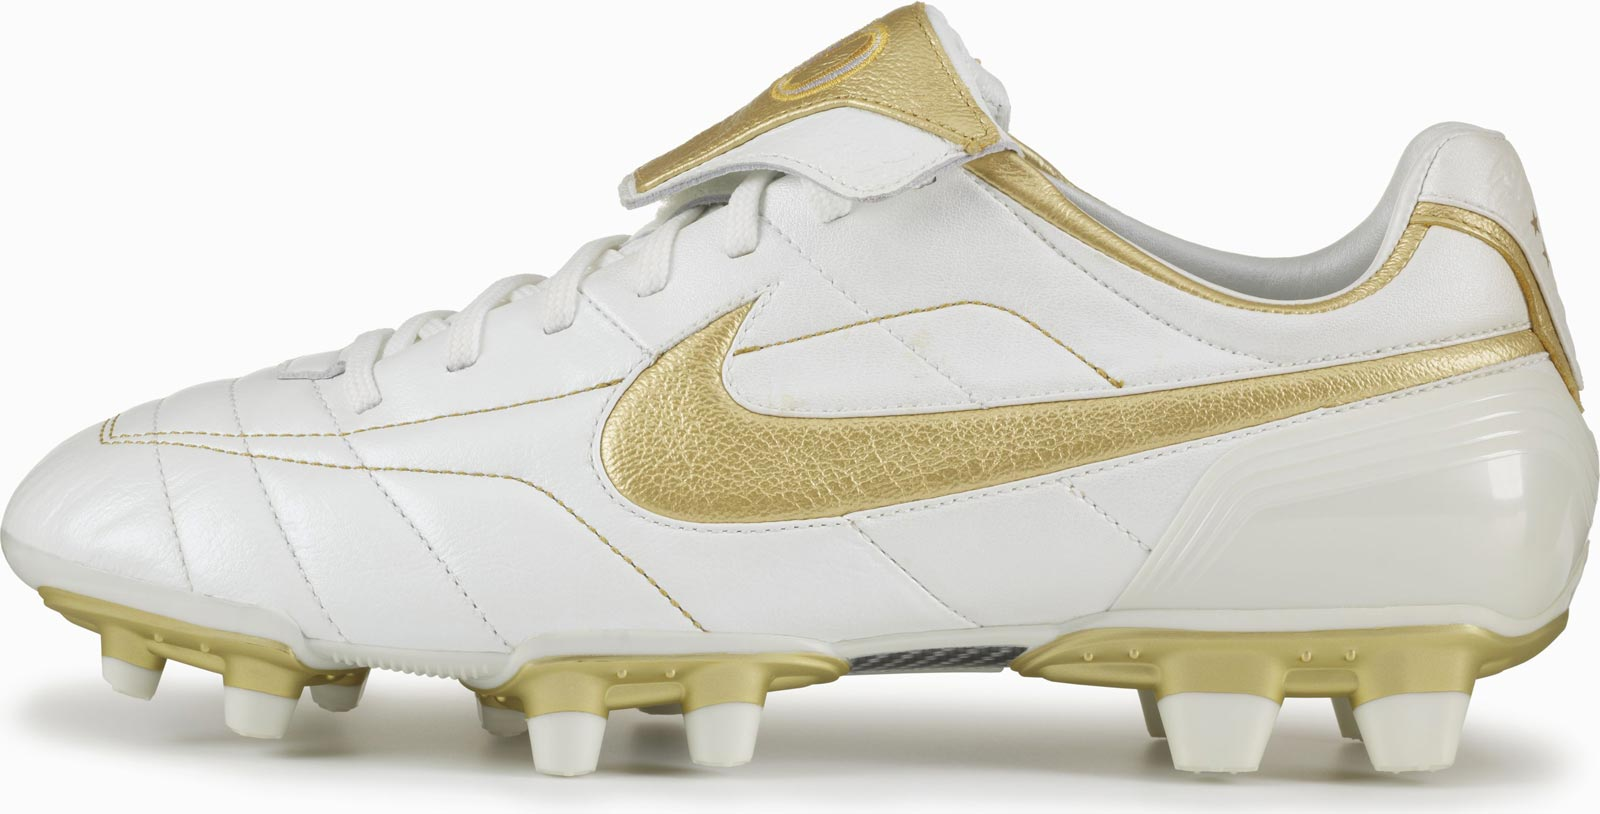 a86e6b66f ... discount code for nike air legend tiempo ronaldinho 2005 b8deb e3208